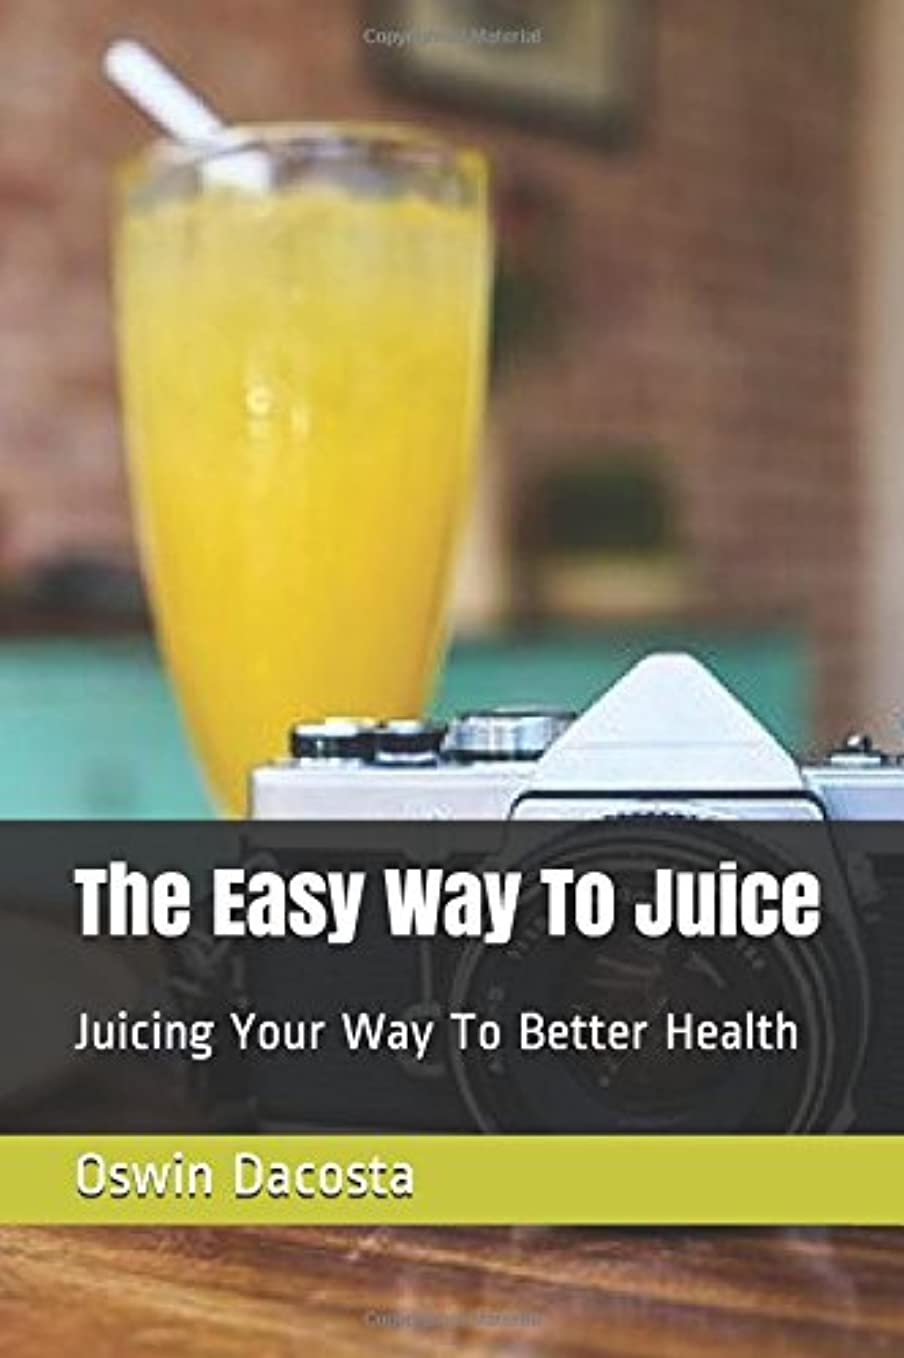 ボード回る甘やかすThe Easy Way To Juice: Juicing Your Way To Better Health (Liquid Body)